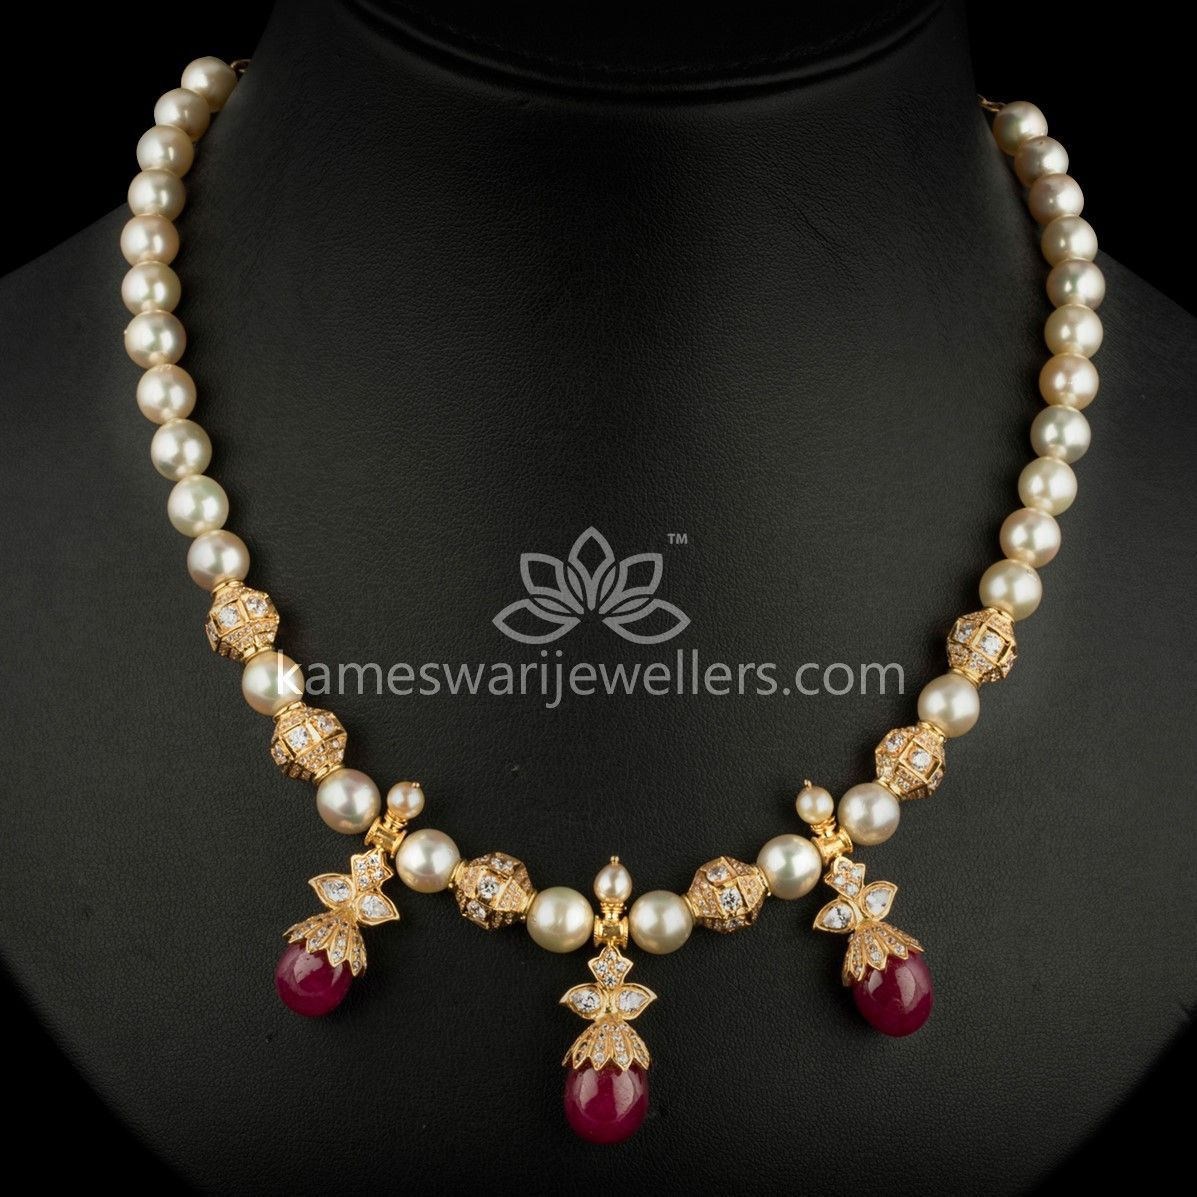 67d812a47 Buy Chain Online | Elegant Pearl String With Ruby Pota Drops from Kameswari  Jewellers